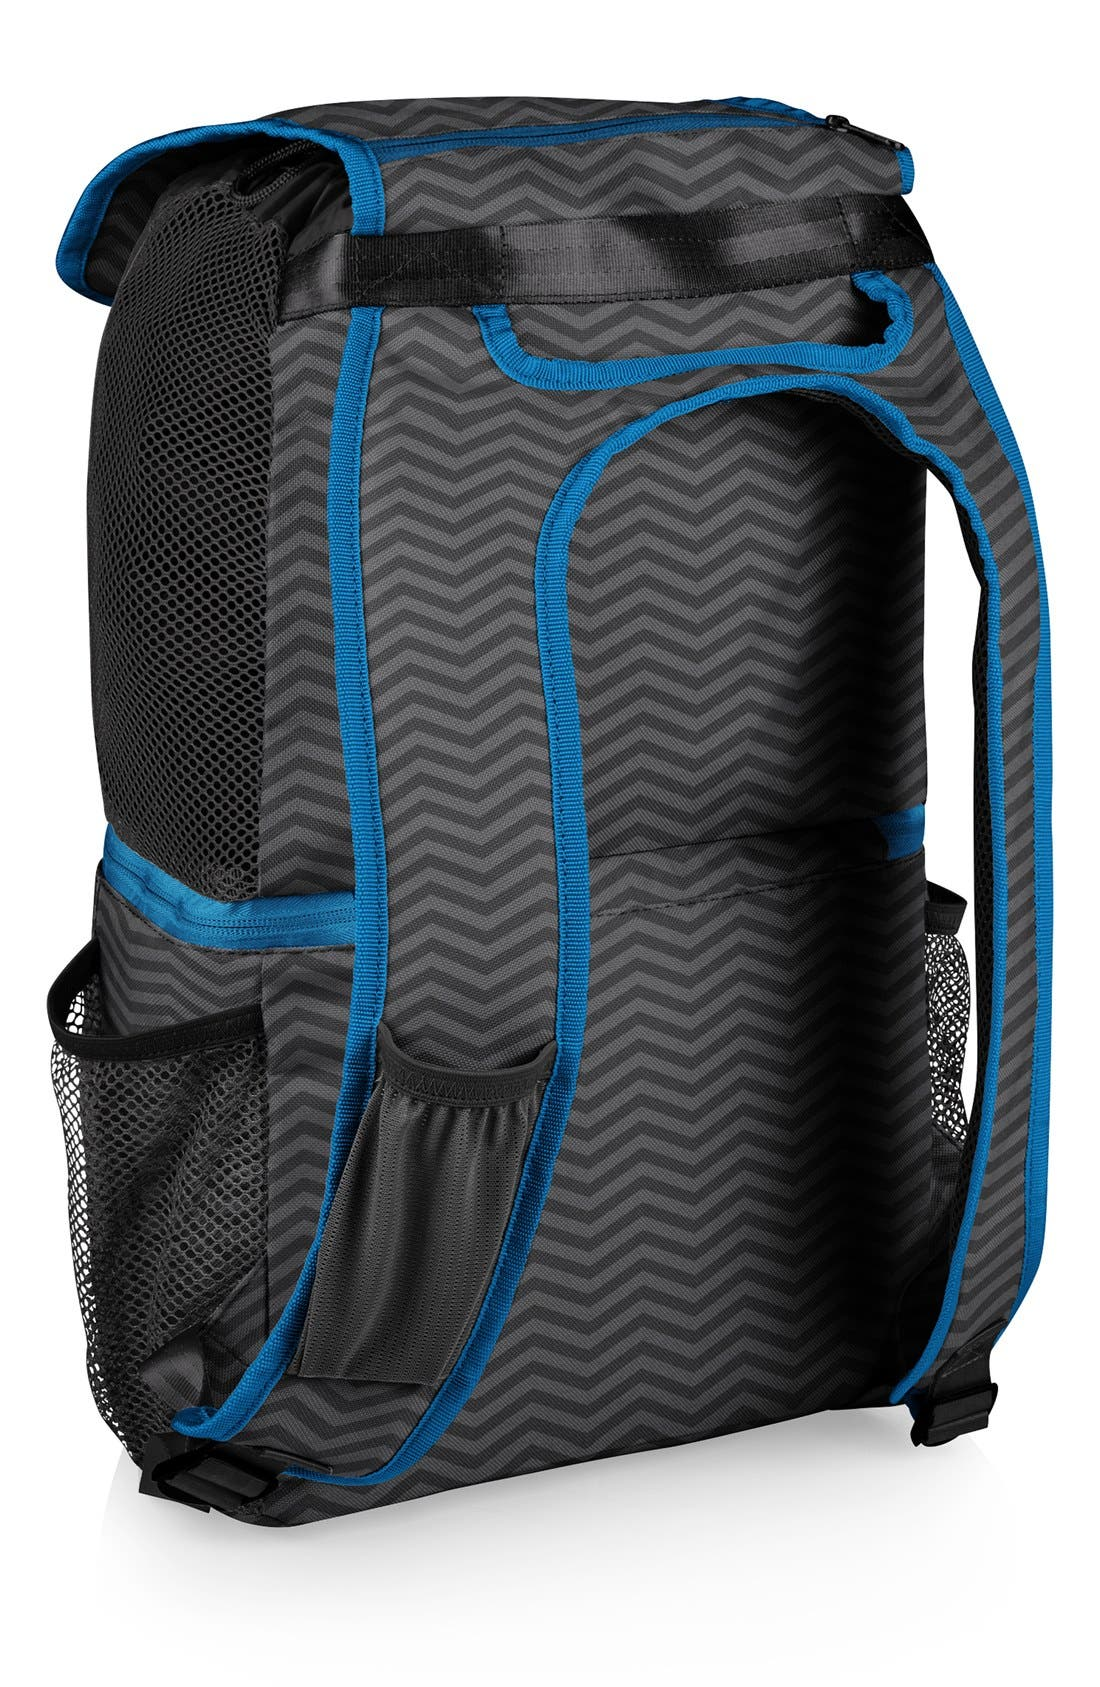 'Pismo' Insulated Cooler Backpack,                             Alternate thumbnail 3, color,                             020